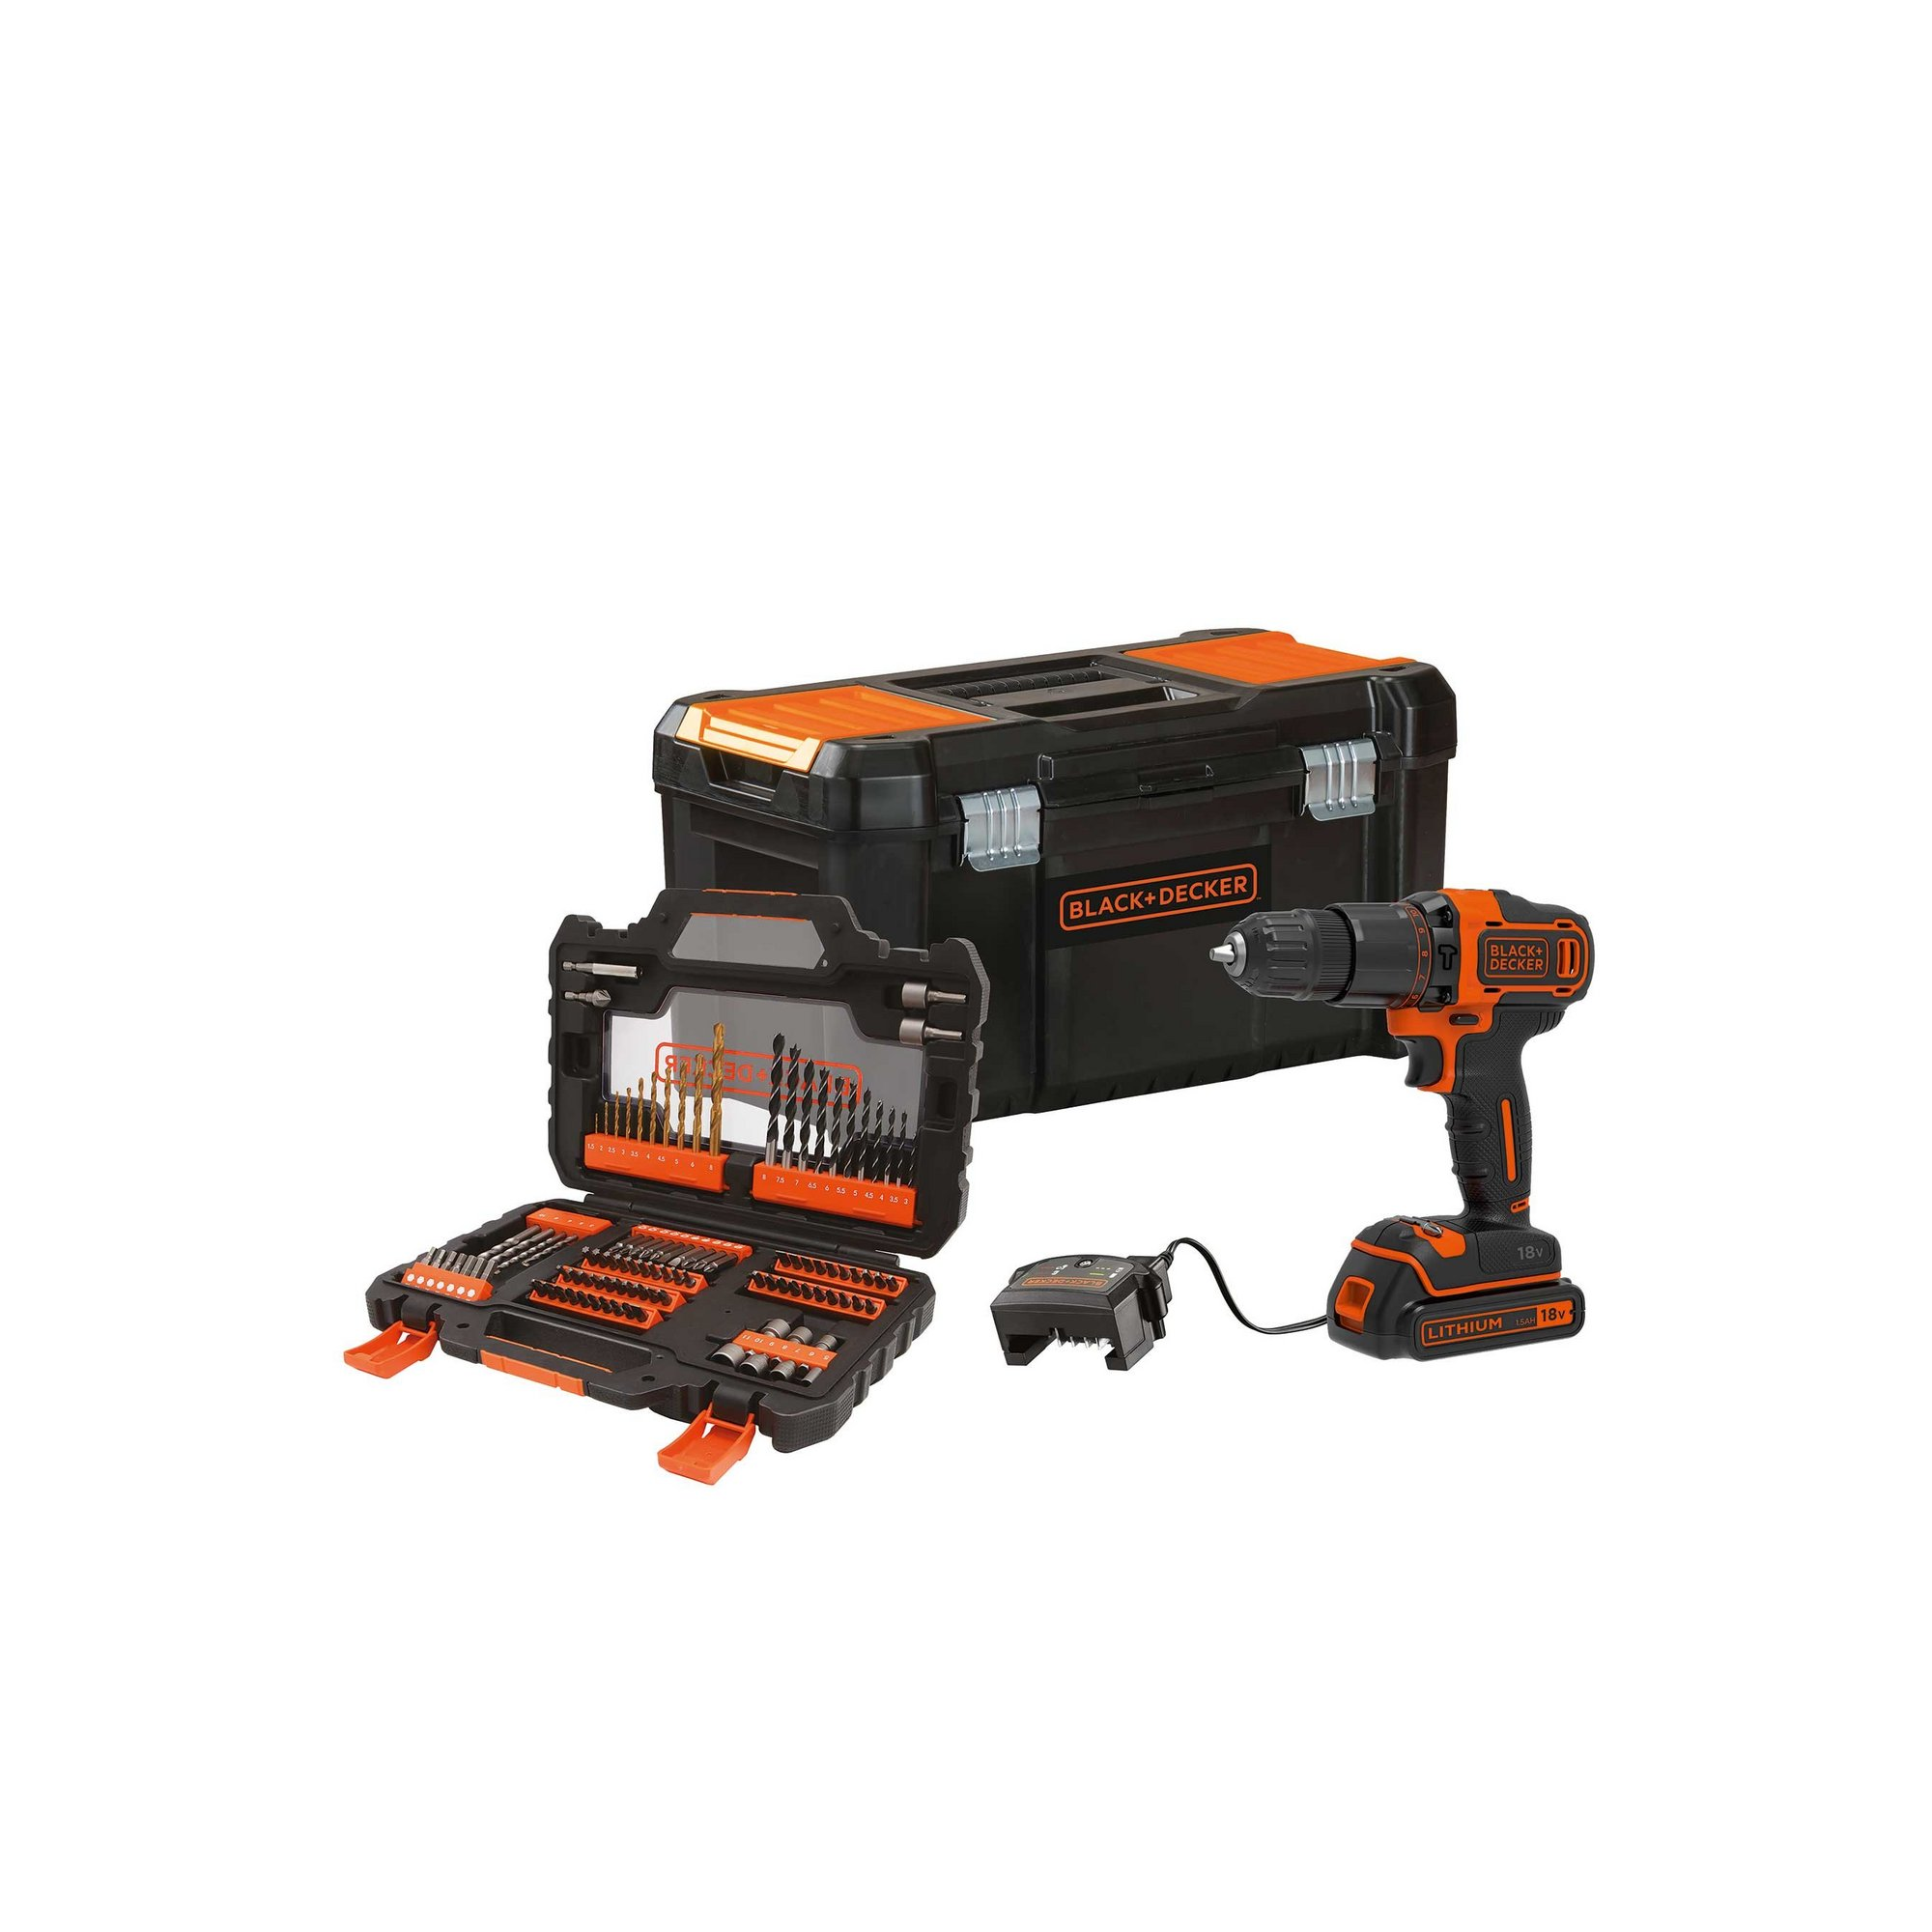 Image of Black and Decker 18v Hammer Drill with 104-Piece Accessory Set